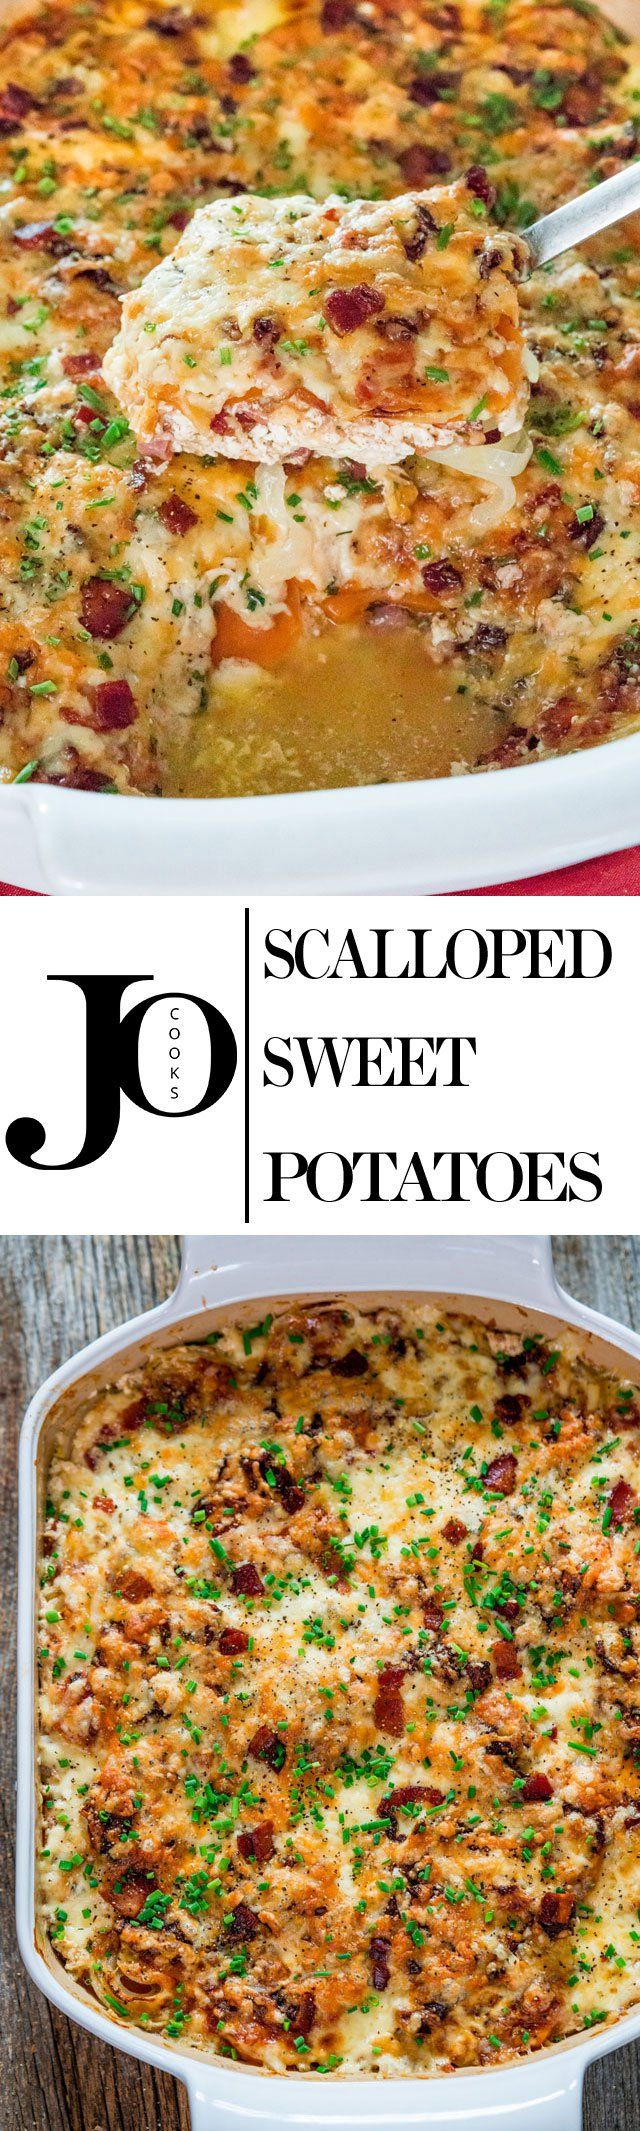 These Scalloped Sweet Potatoes are so creamy and delicious. They're the perfect side dish for your holiday or winter meals!